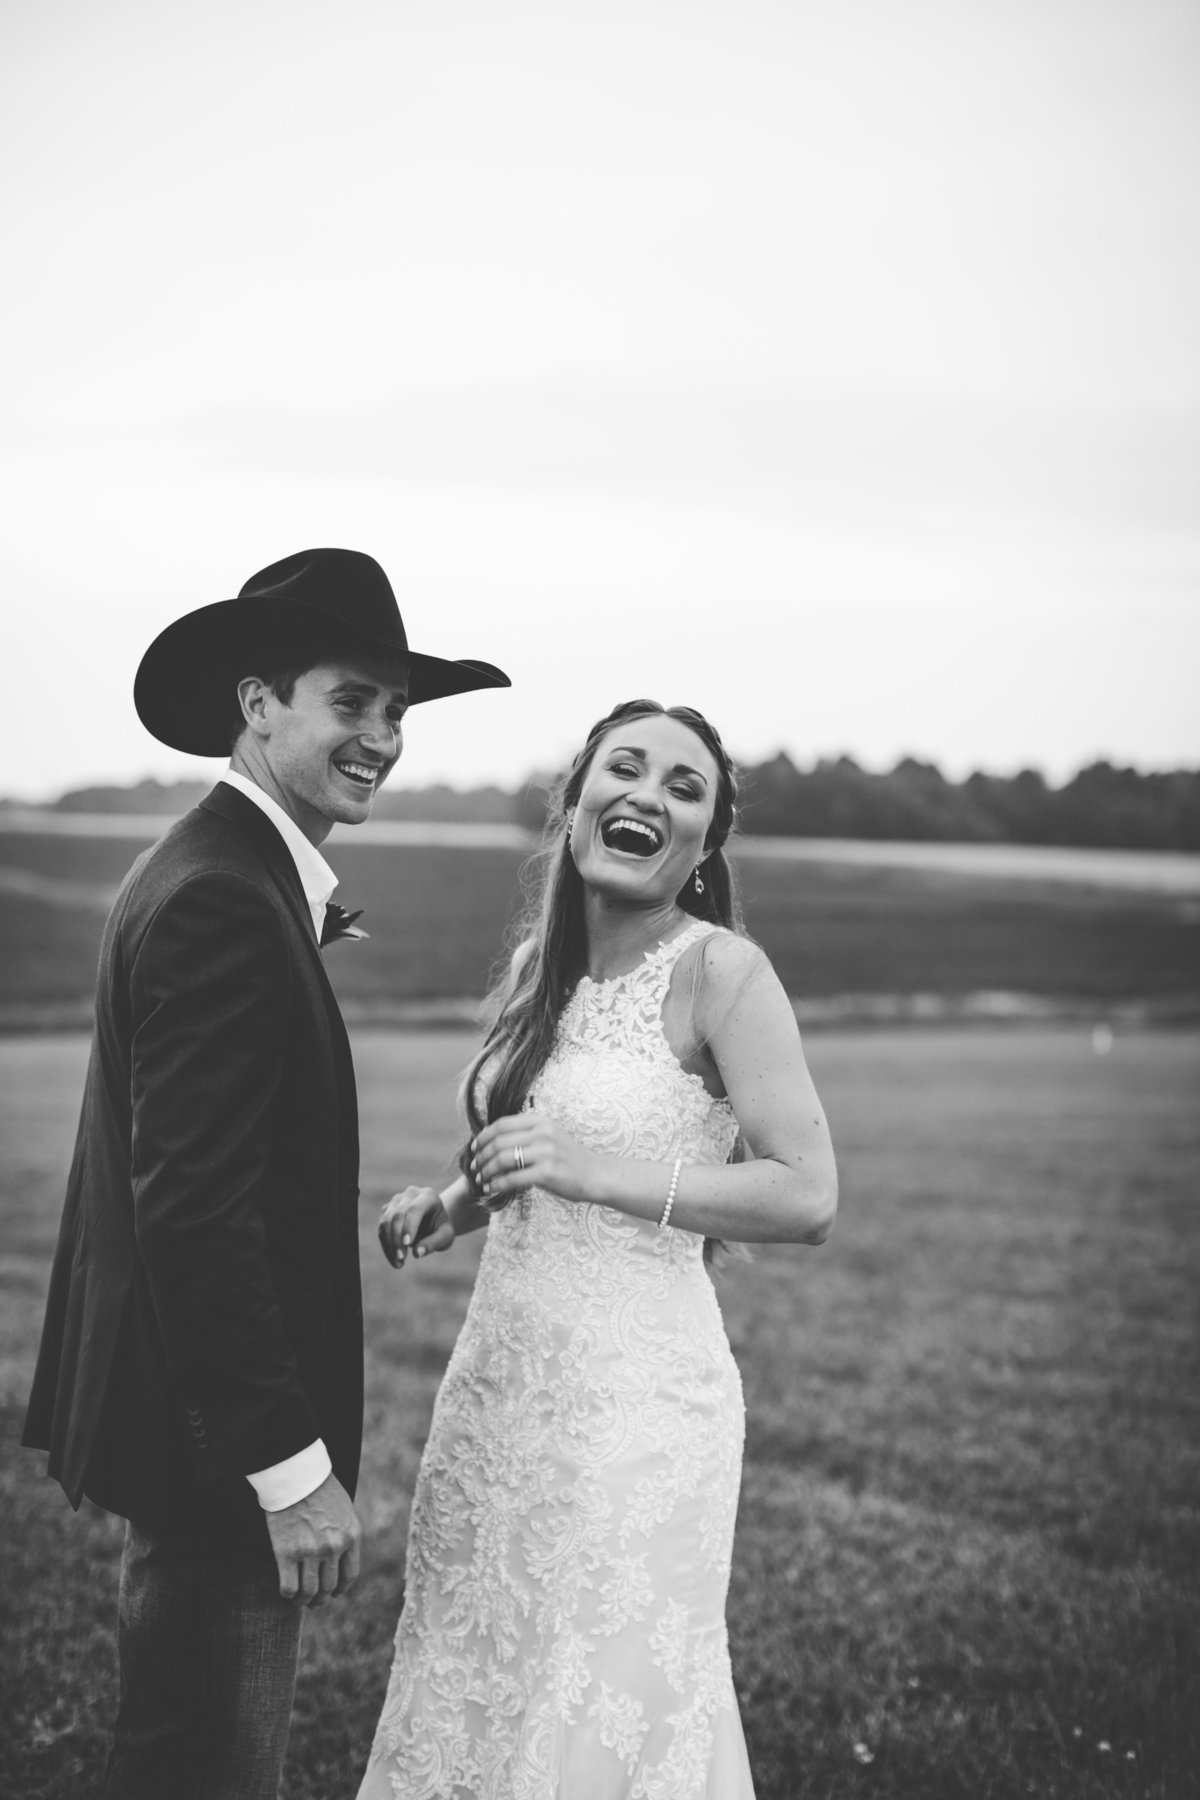 Nsshville Bride - Nashville Brides - The Hayloft Weddings - Tennessee Brides - Kentucky Brides - Southern Brides - Cowboys Wife - Cowboys Bride - Ranch Weddings - Cowboys and Belles074